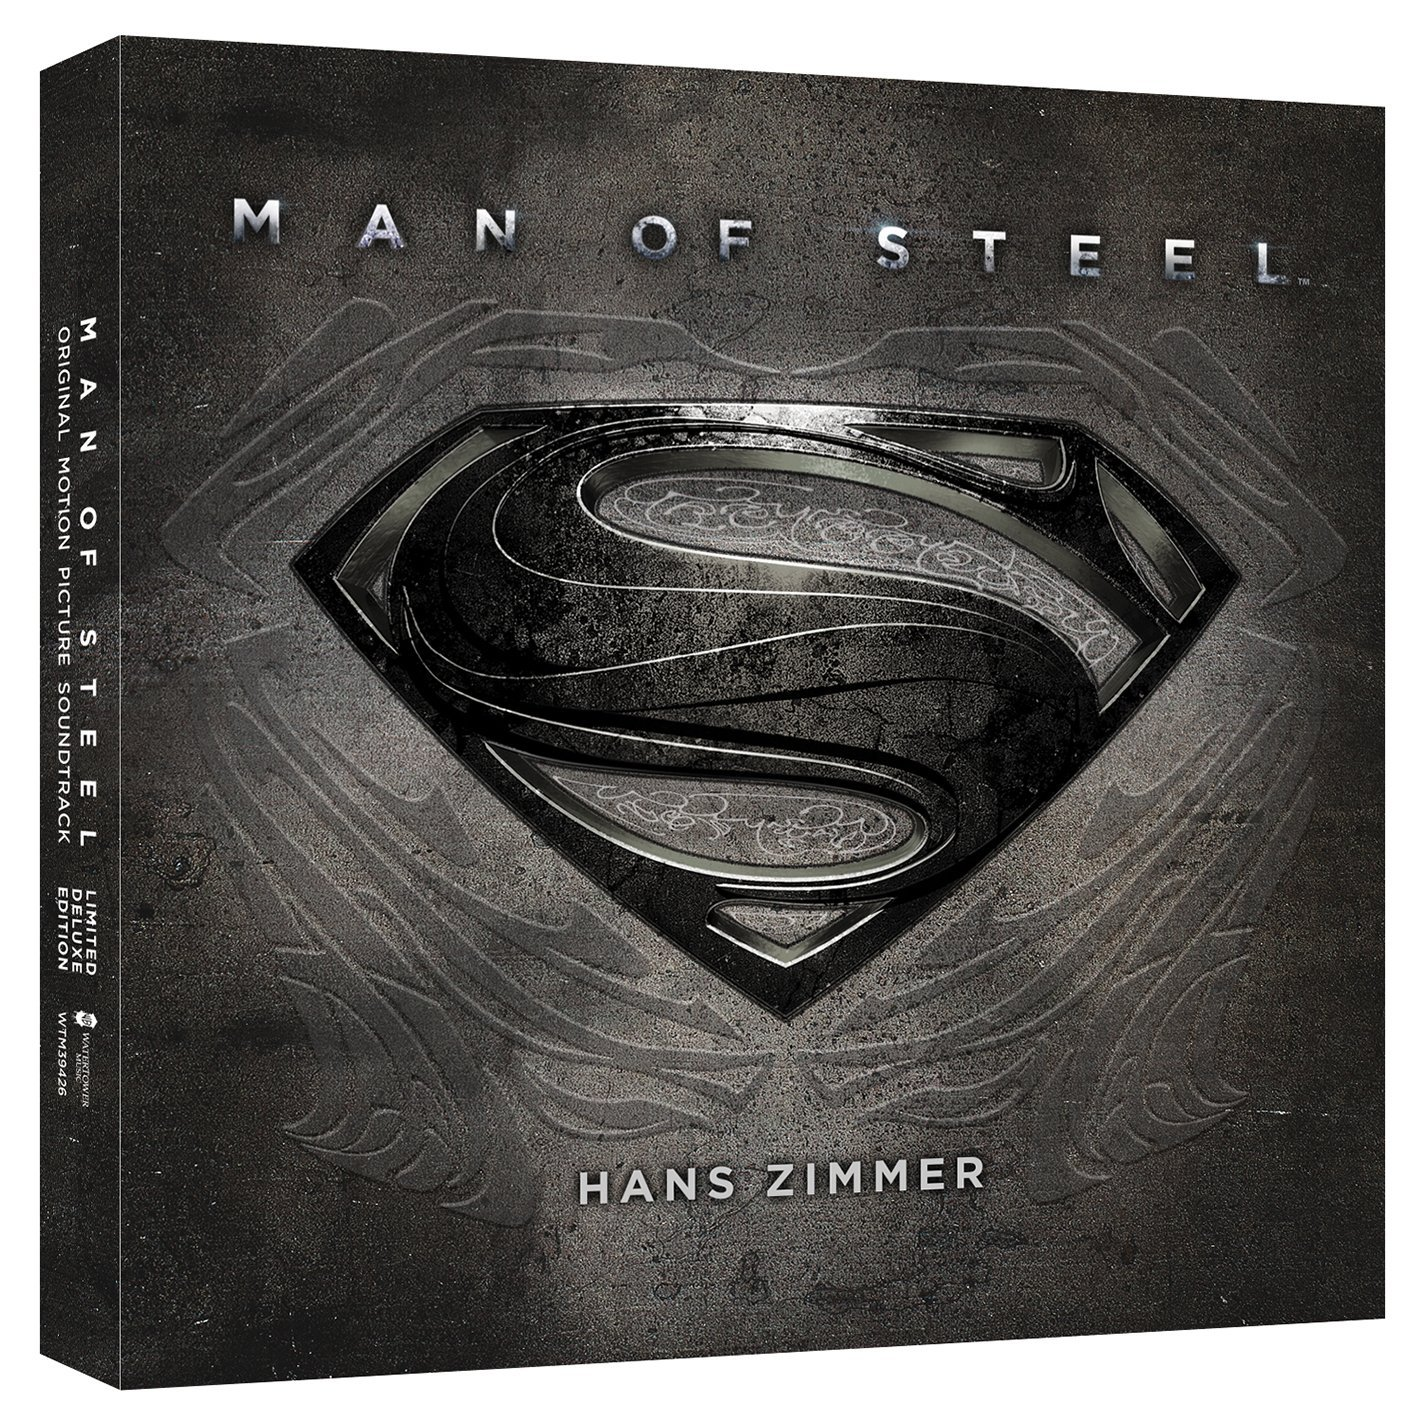 Man Of Steel 2013 OST- Hans Zimmer